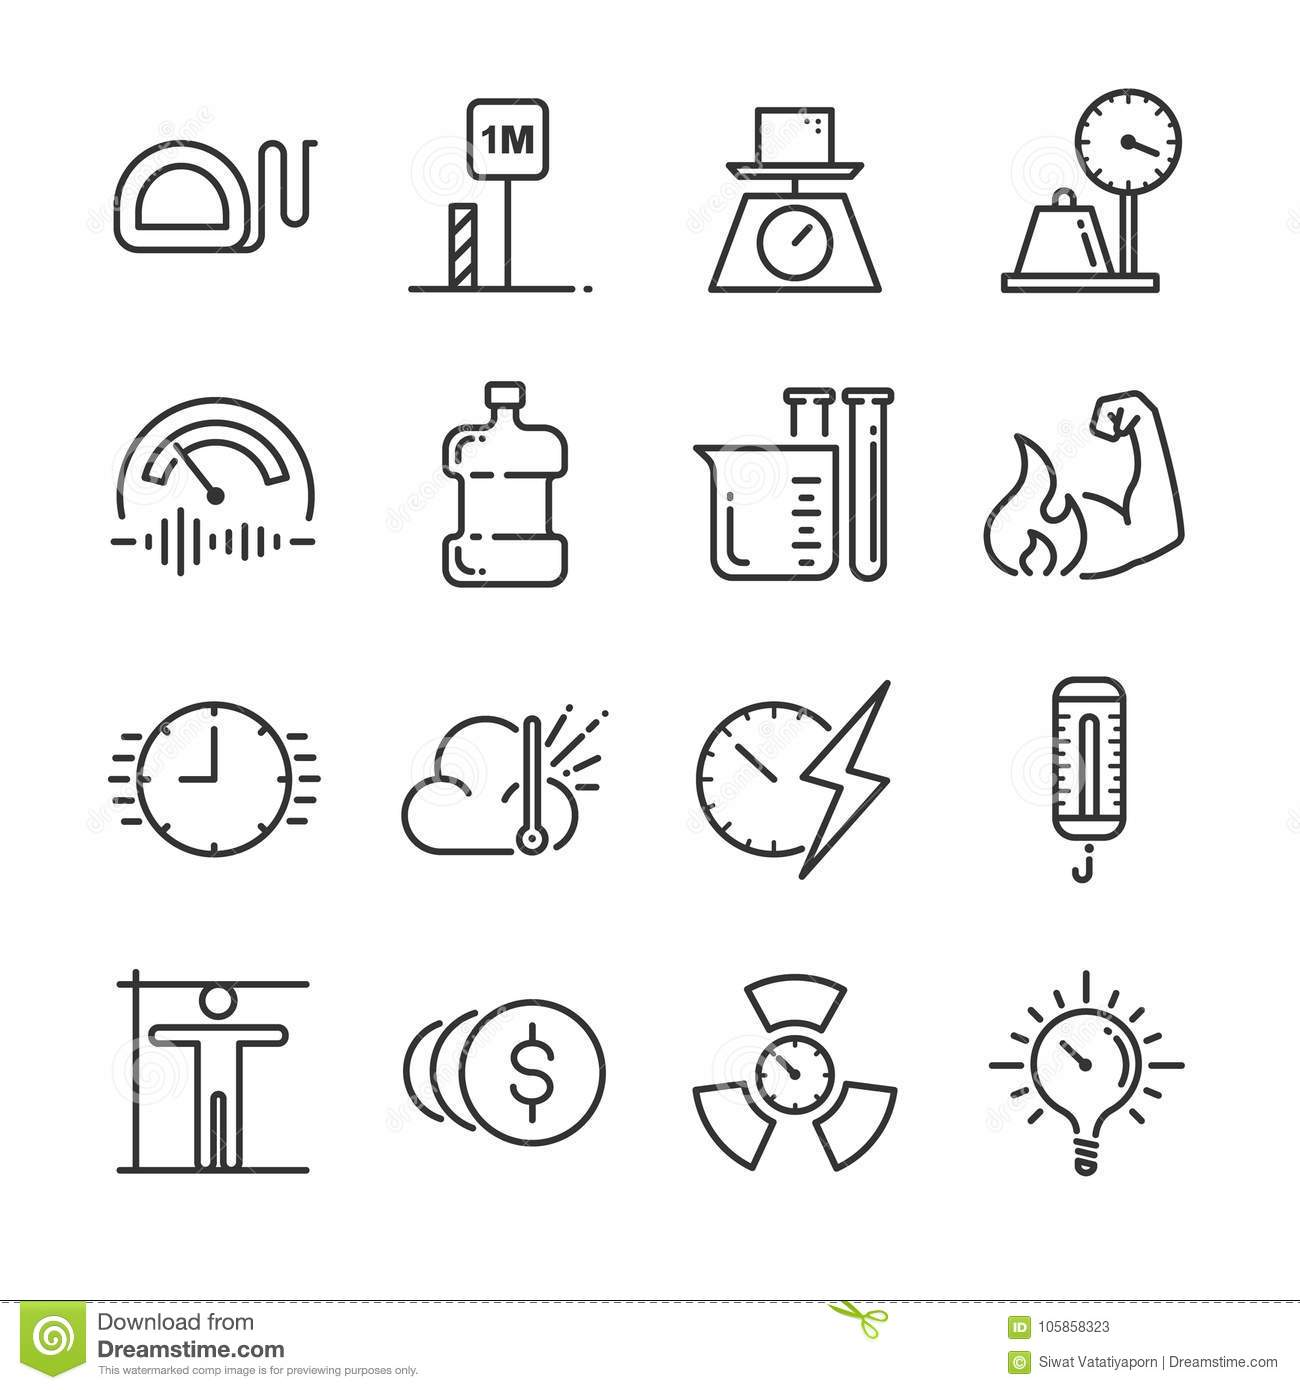 unit of measurement icon set  included the icons as miles